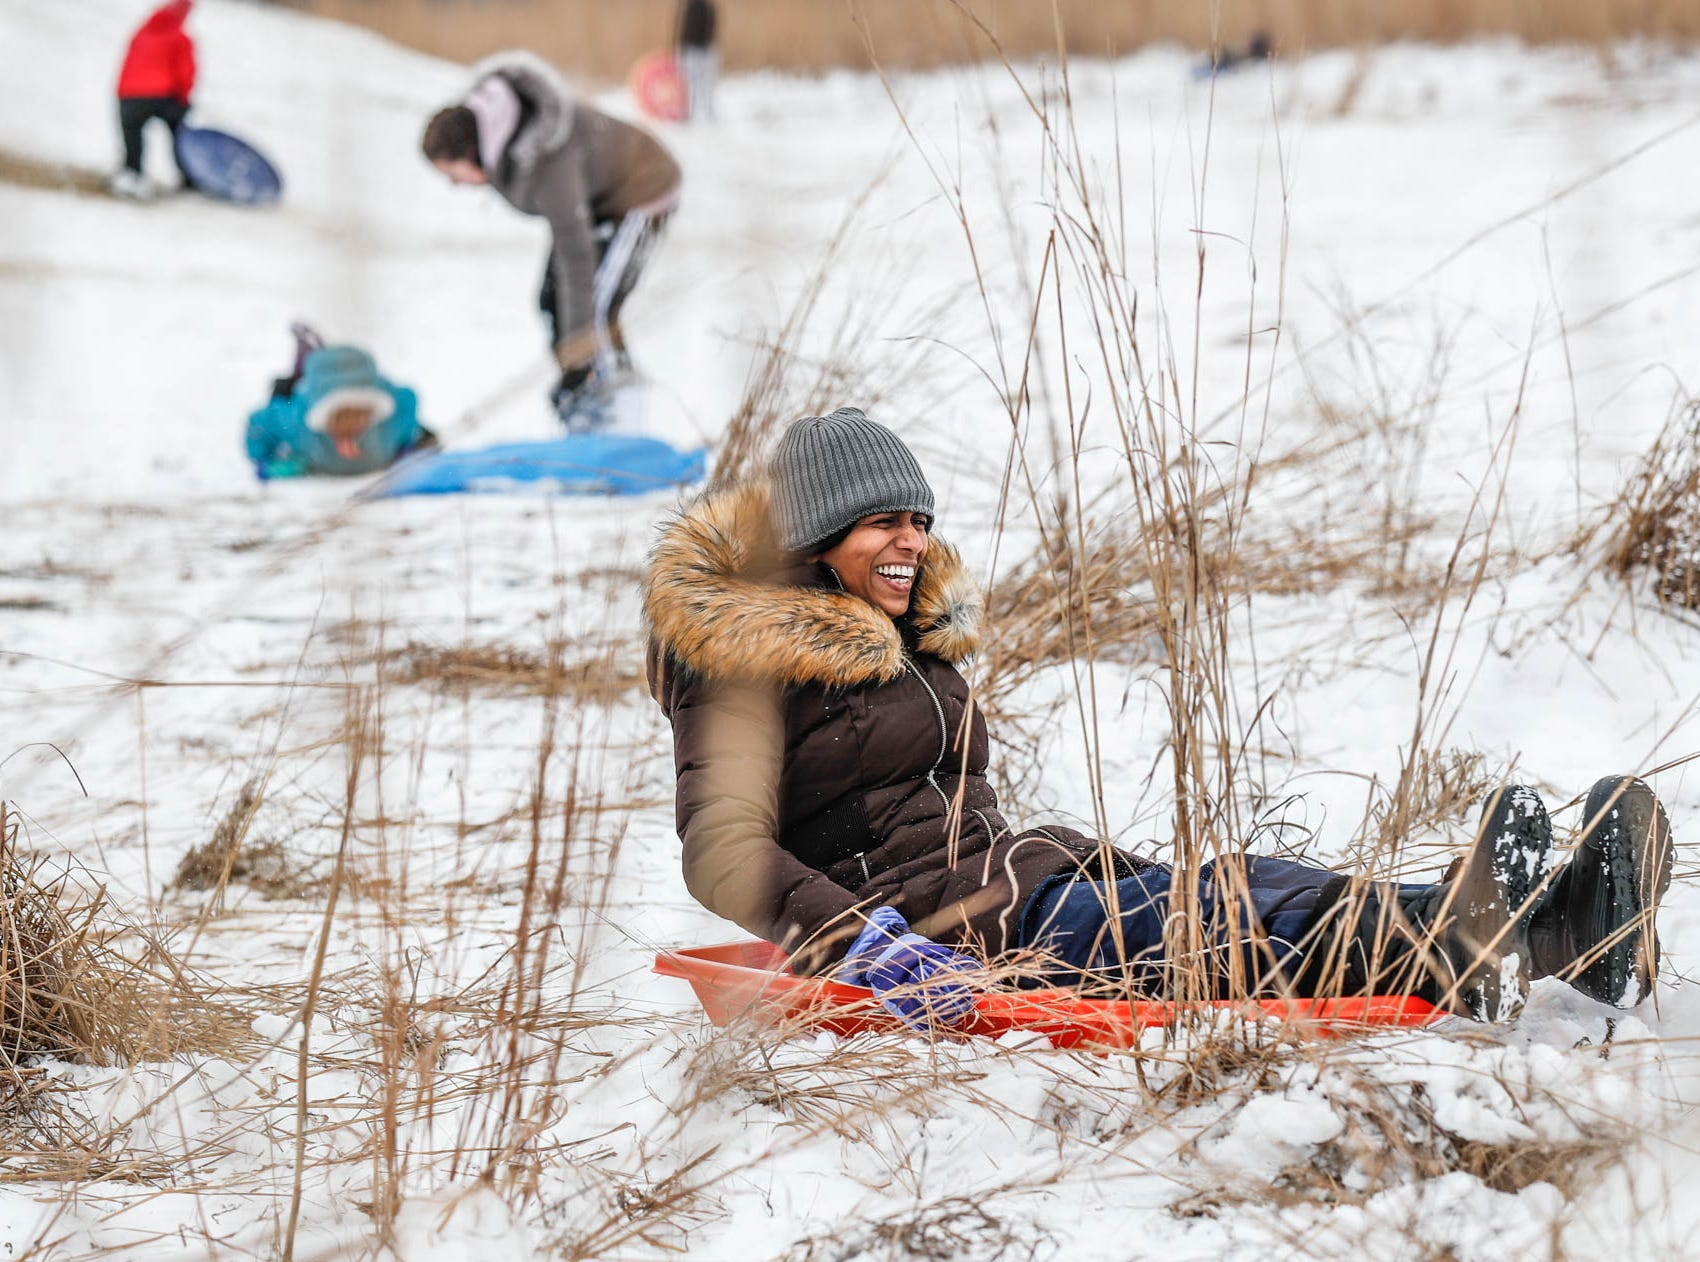 Fathima Mohammed zooms down the sledding hill and in to the tall grass at West Park in Carmel Ind. on Sunday, Jan. 13, 2019.